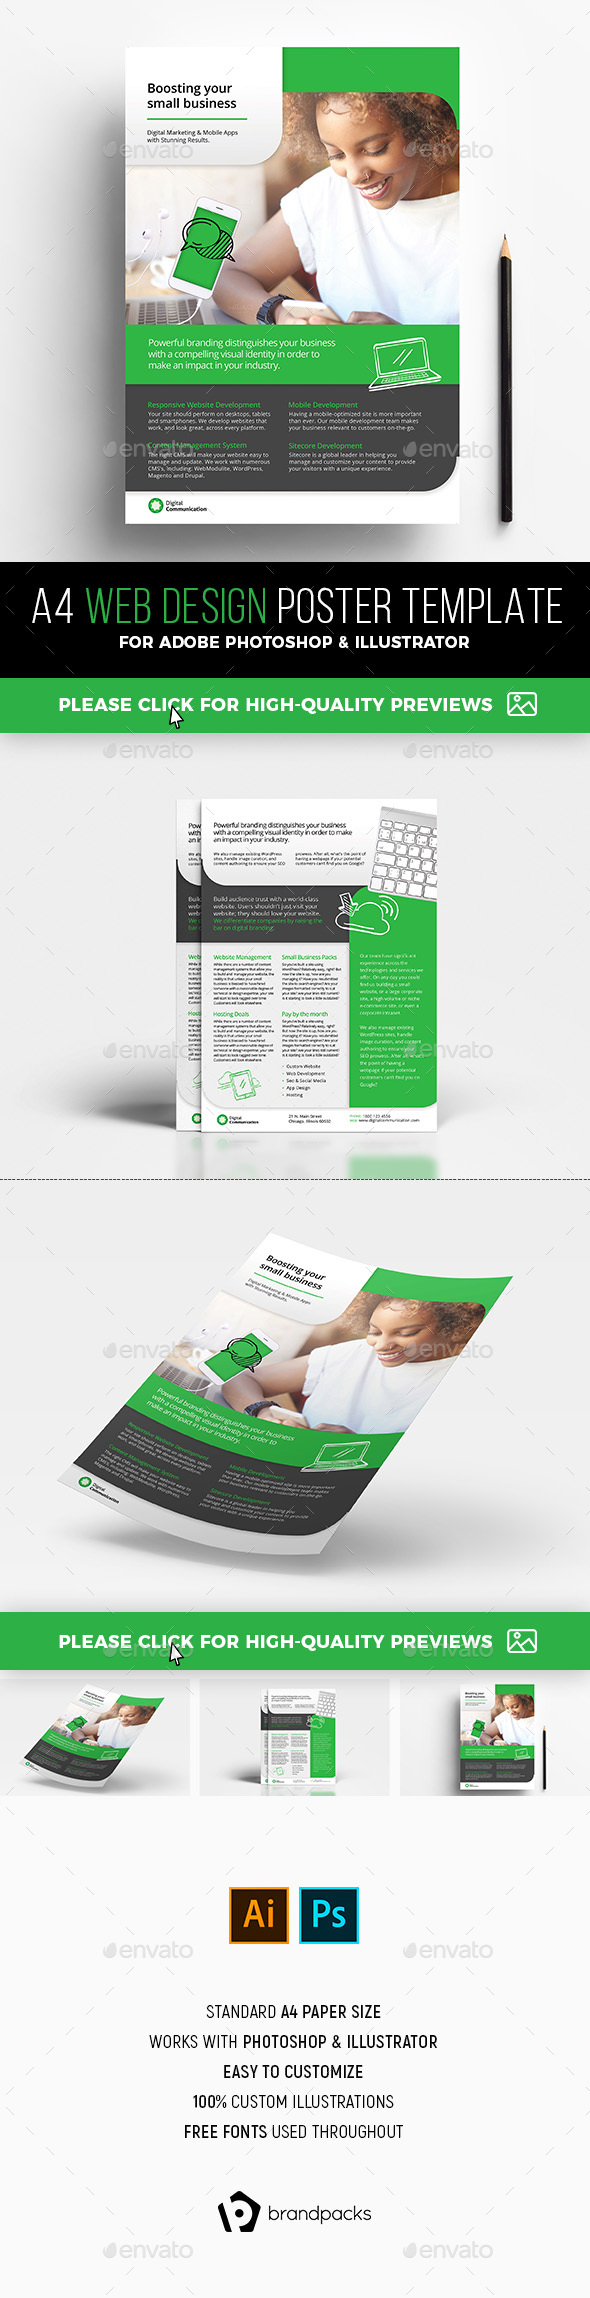 Web Design Service Poster / Flyer Template - Corporate Flyers